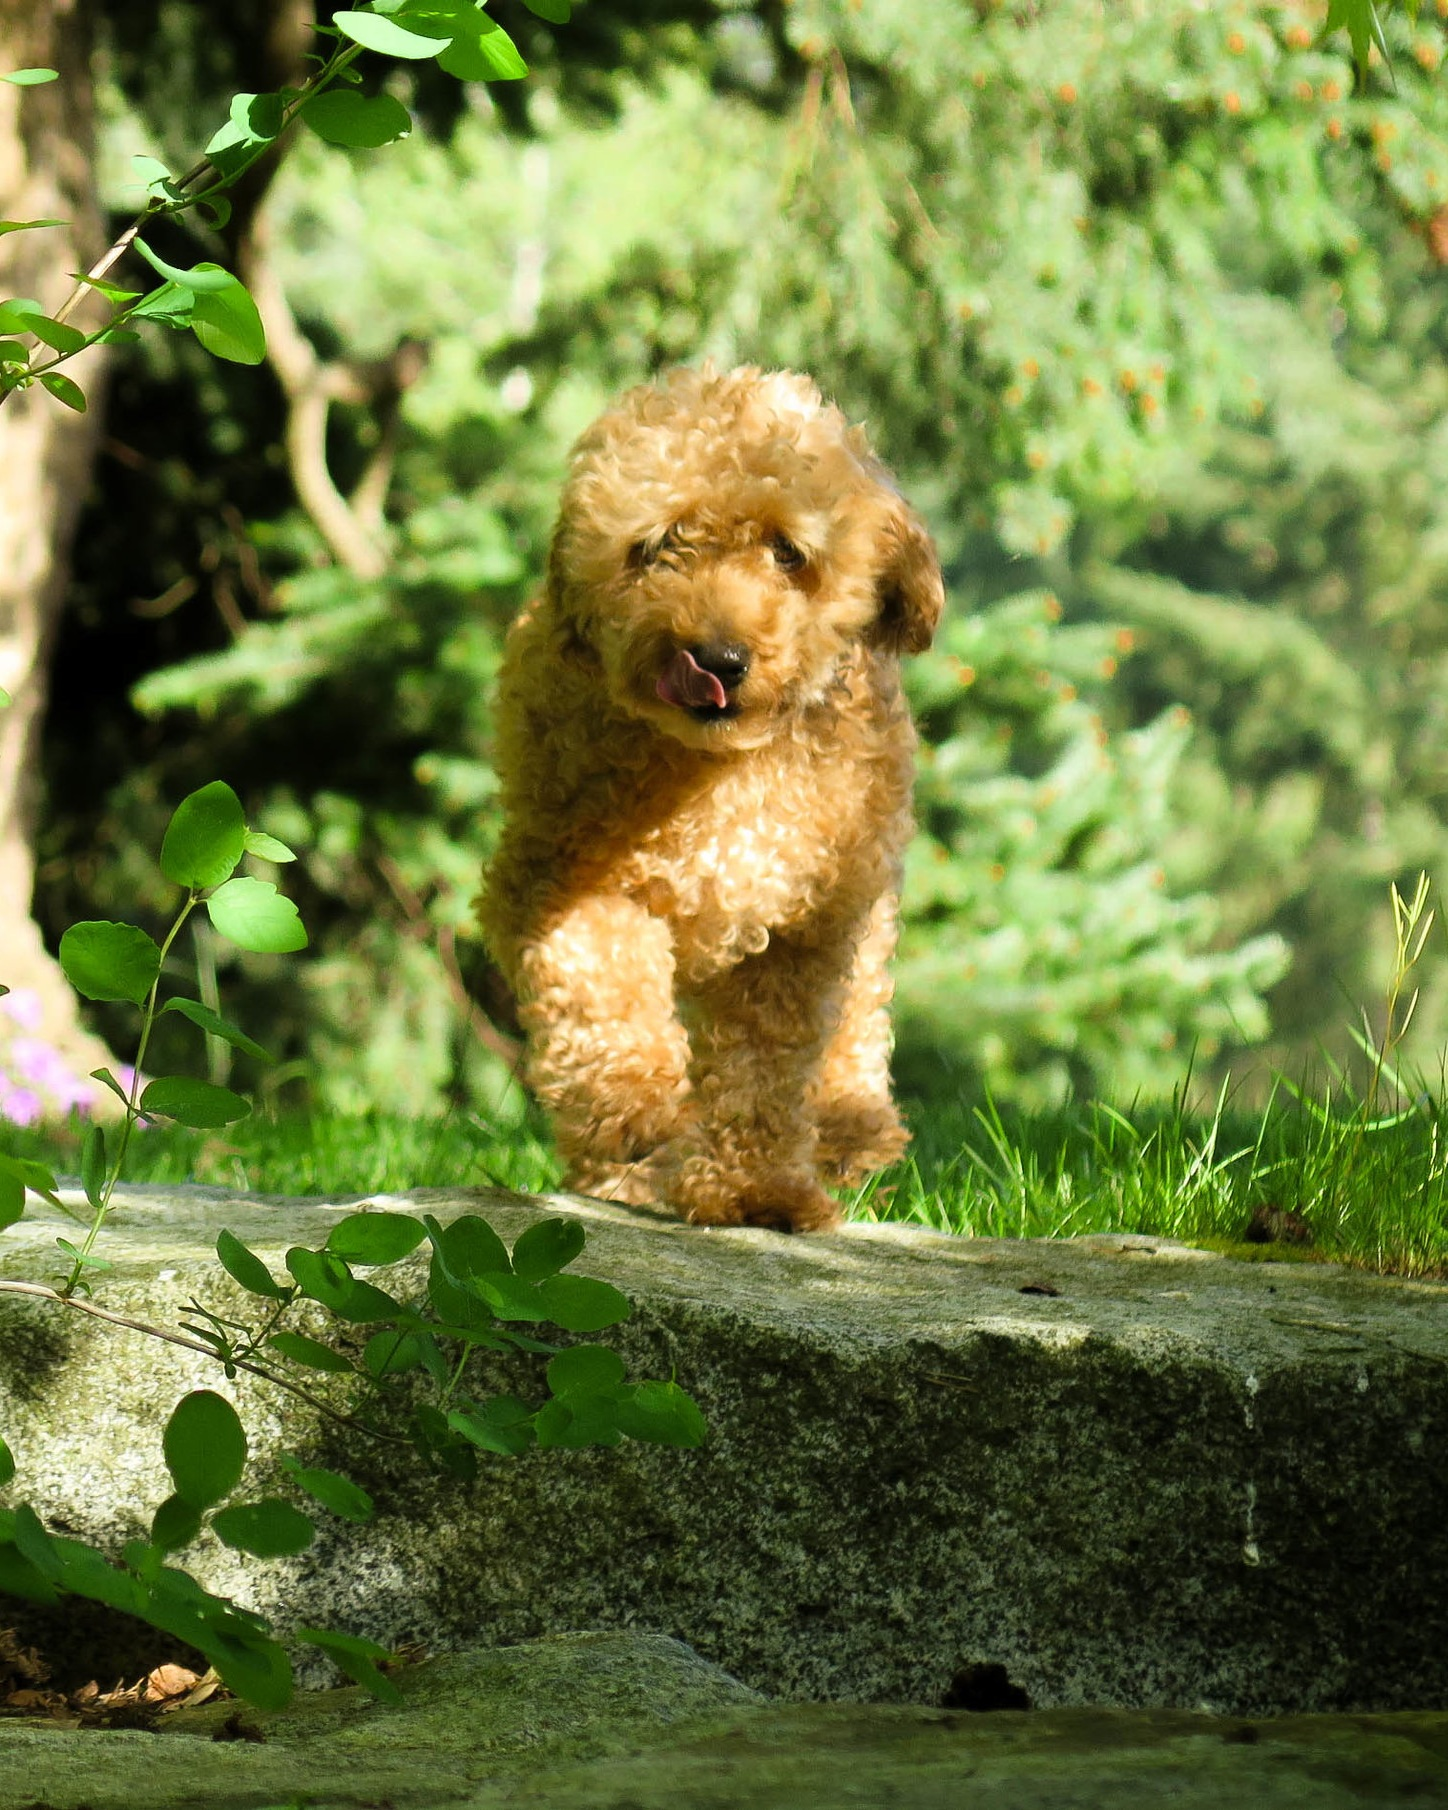 Sparkle - Small but spunky describes Sparkle, our 8 pound female Mini Goldendoodle. With her gentle and obedient but occasionally adventurous spirit, she spends her time frisking with her mom and friends and finding things to chase at her home. She has beautiful smaller puppies admired by all who catch a glimpse of them.Eileen from Langley, BC